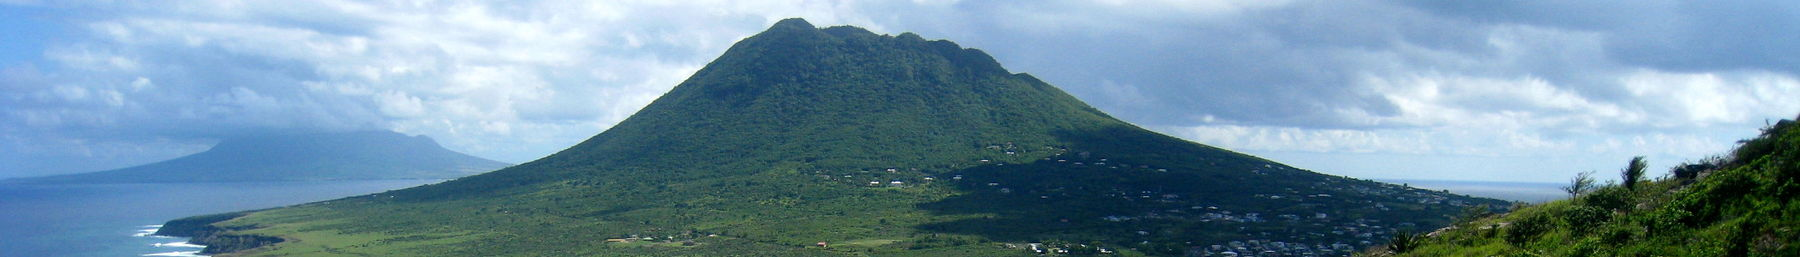 A view of the Atlantic coast of Sint Eustatius with The Quill visible in the distance